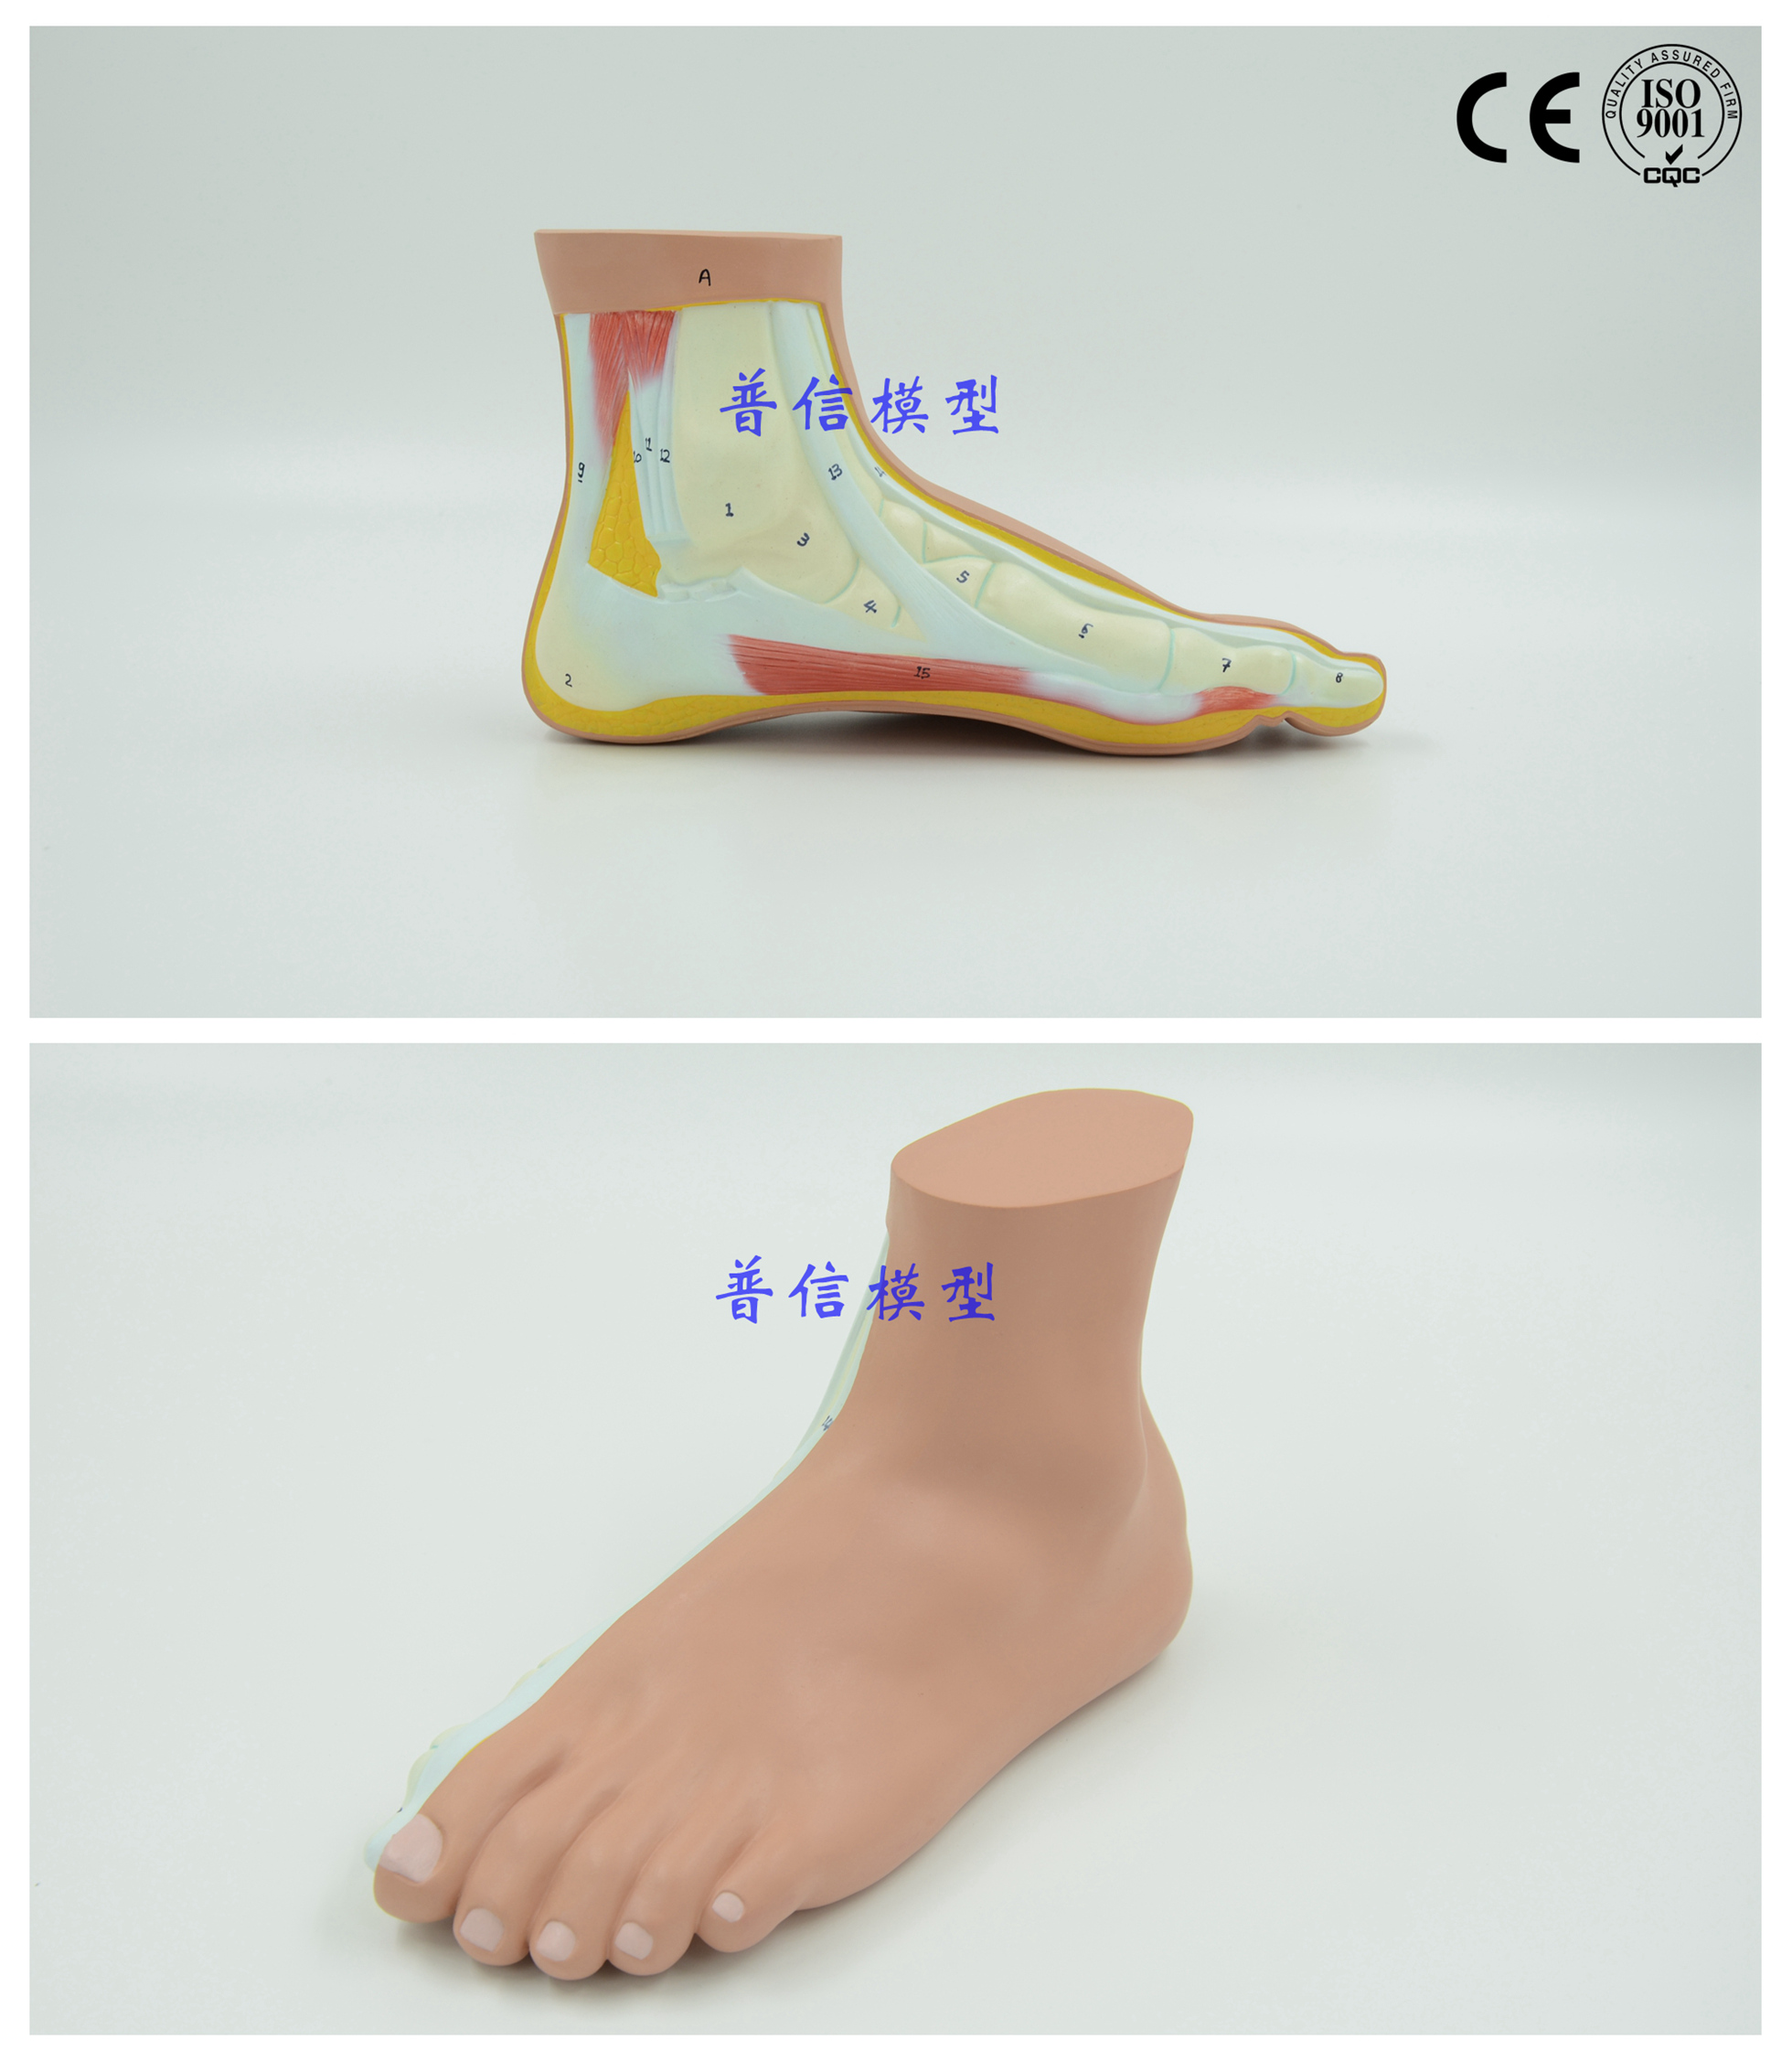 Free Shippingnormal Foot Joint Foot Anatomy Teaching Model And